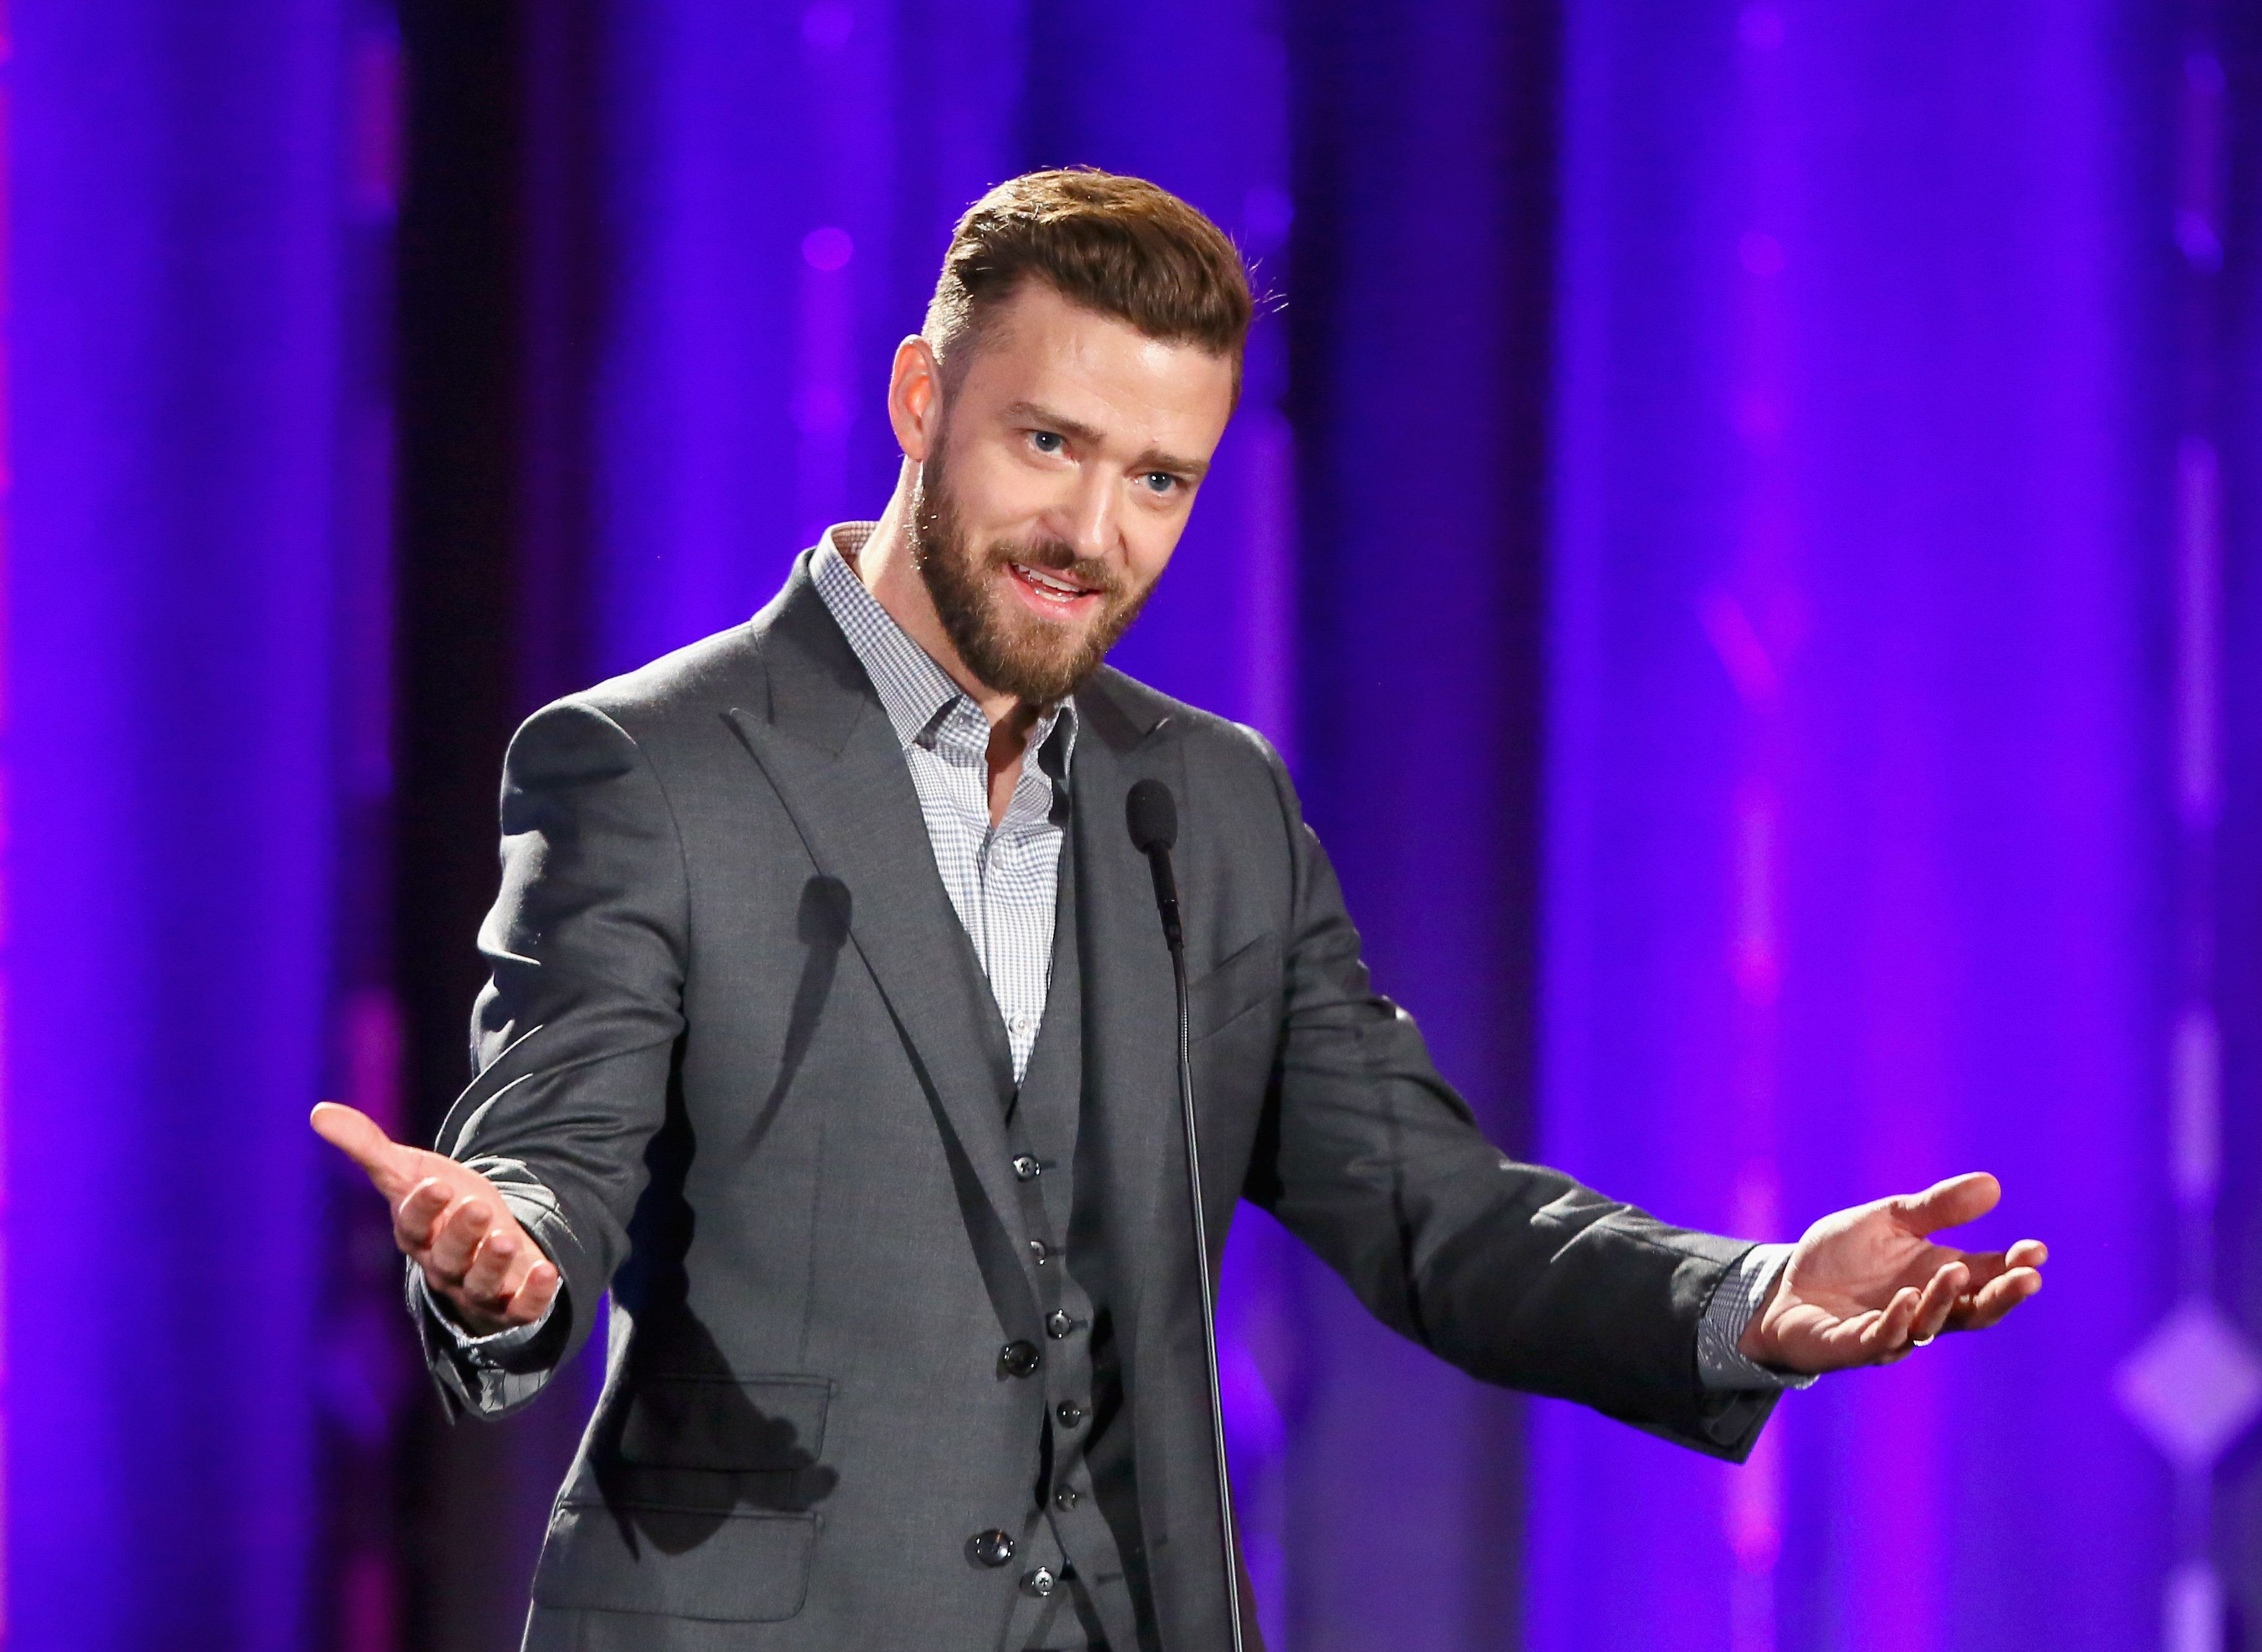 Justin Timberlake opened up about being a first-time dad in an interview with The Hollywood Reporter.